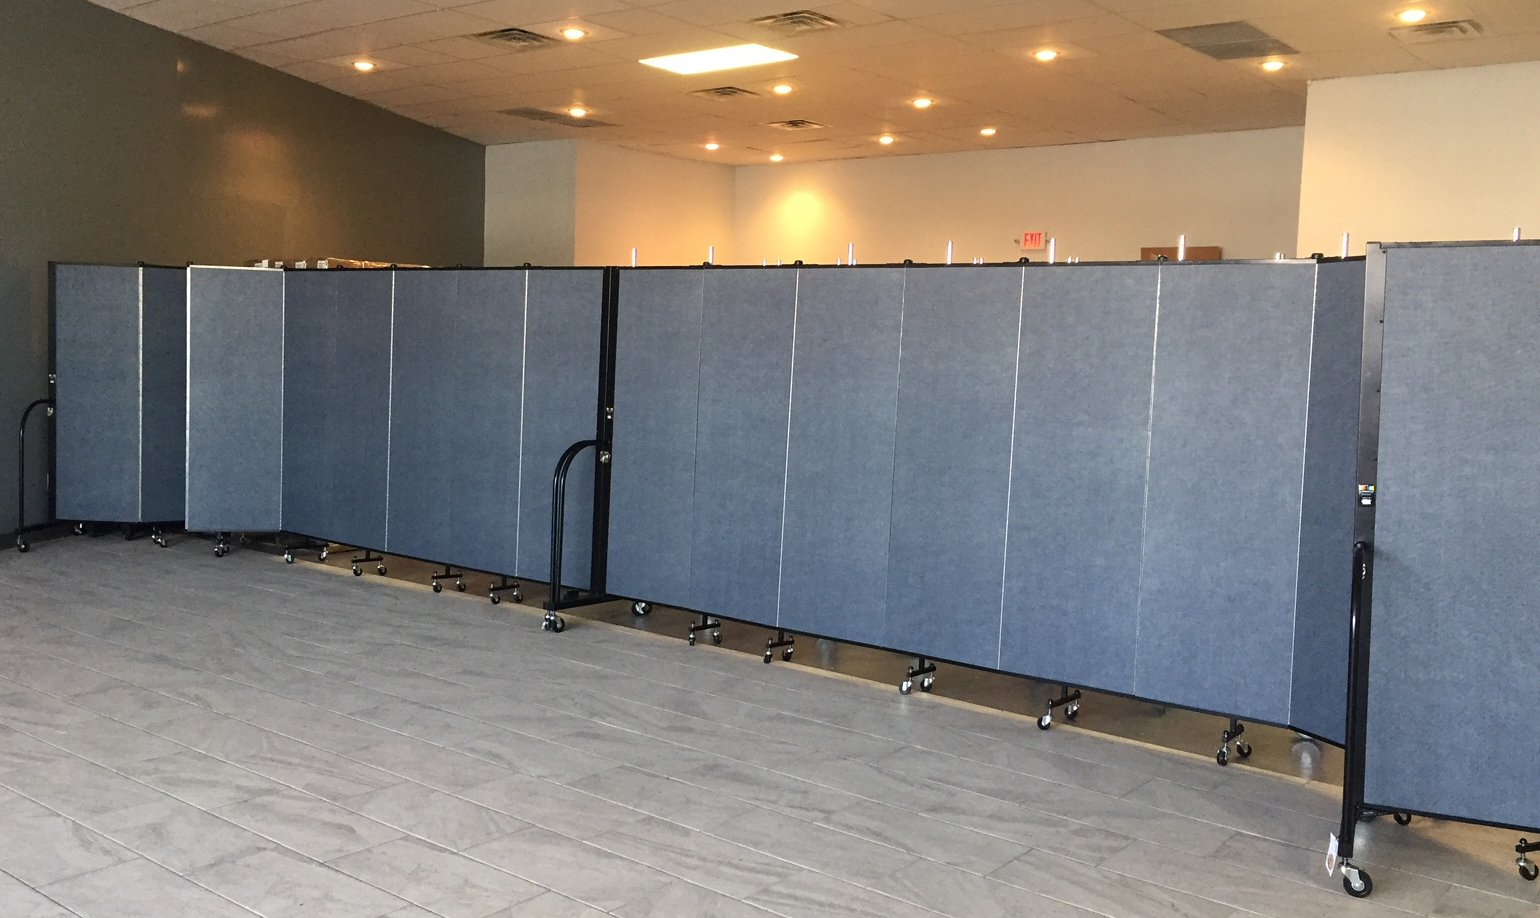 Sound absorbing temporary walls provide ample space for multiple classrooms within one room